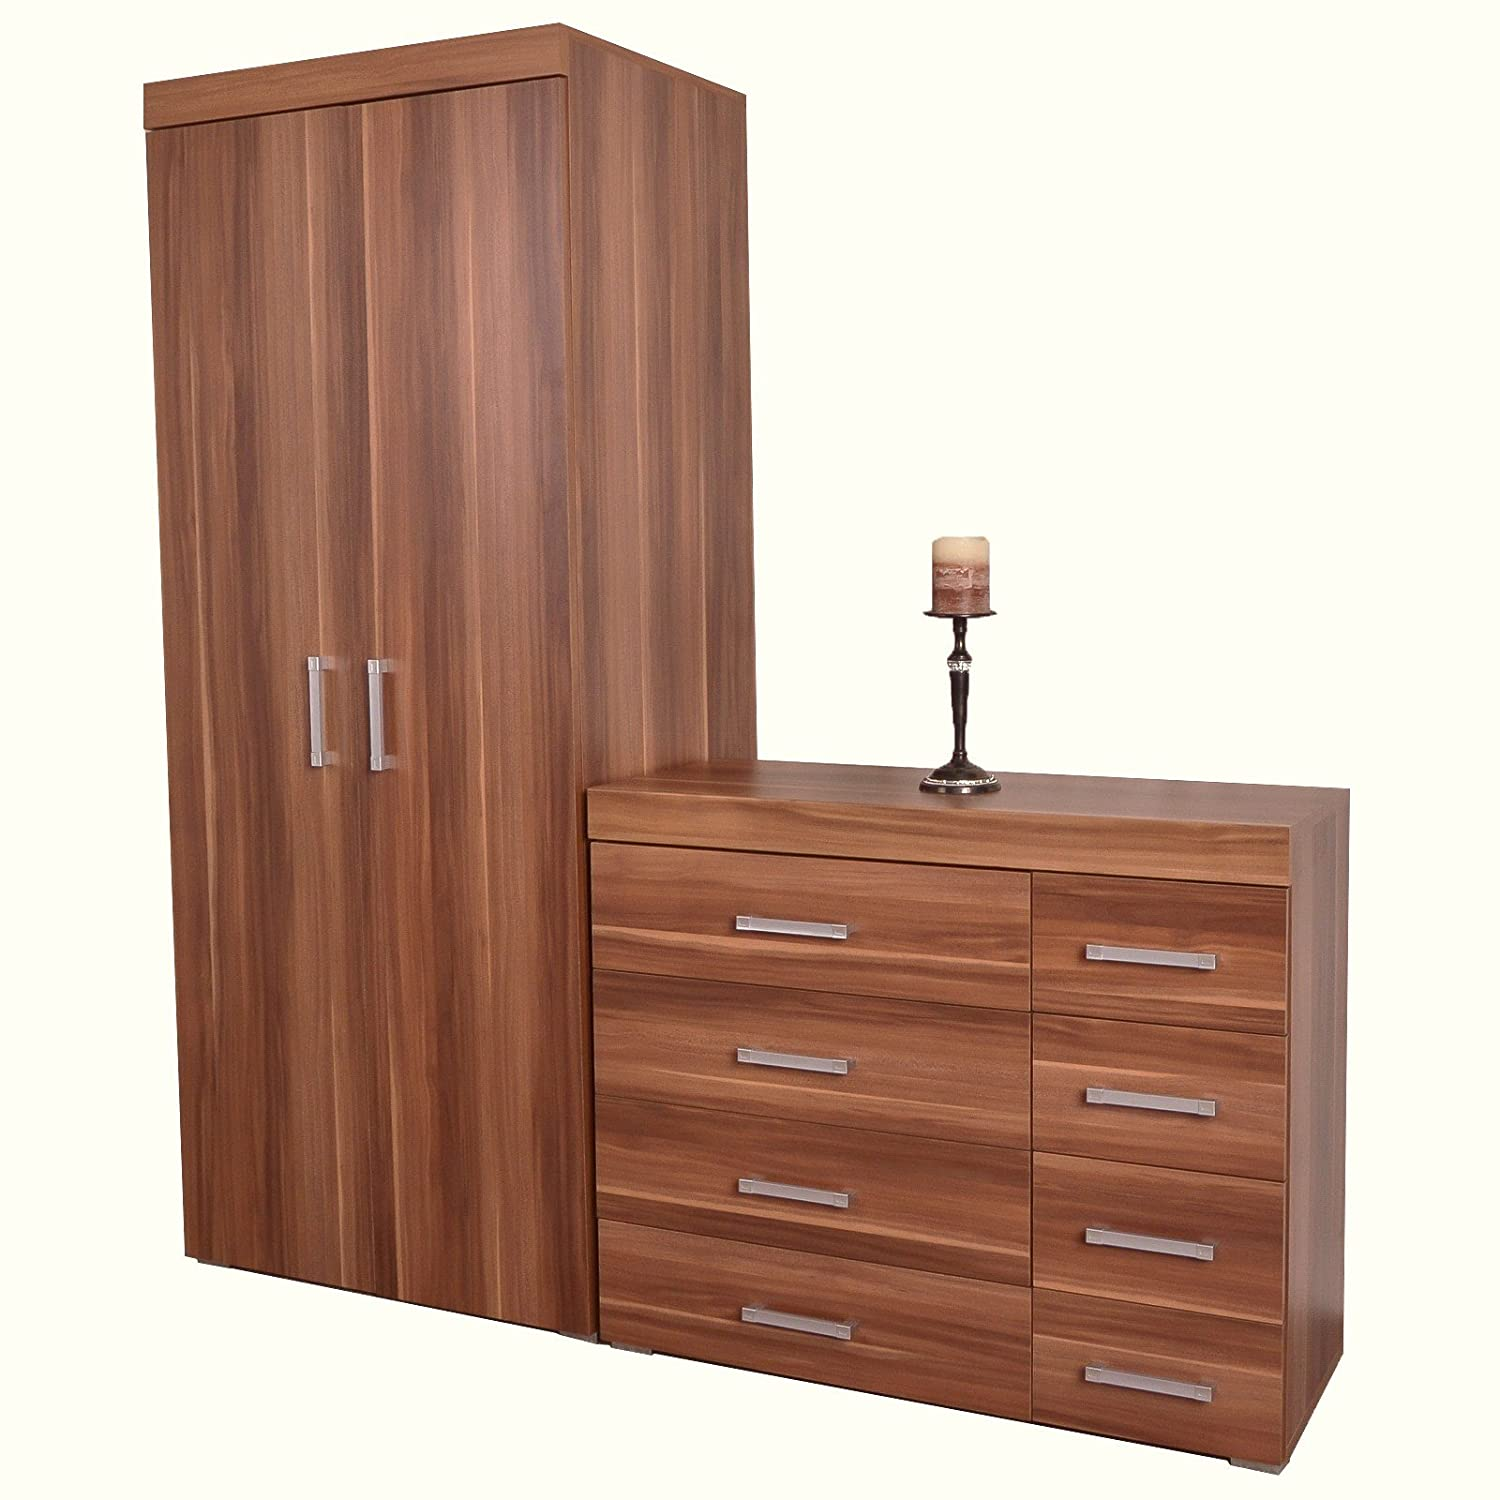 DP 4+4 Drawer Chest Drawers & 2 Door Wardrobe Walnut Effect Bedroom Set